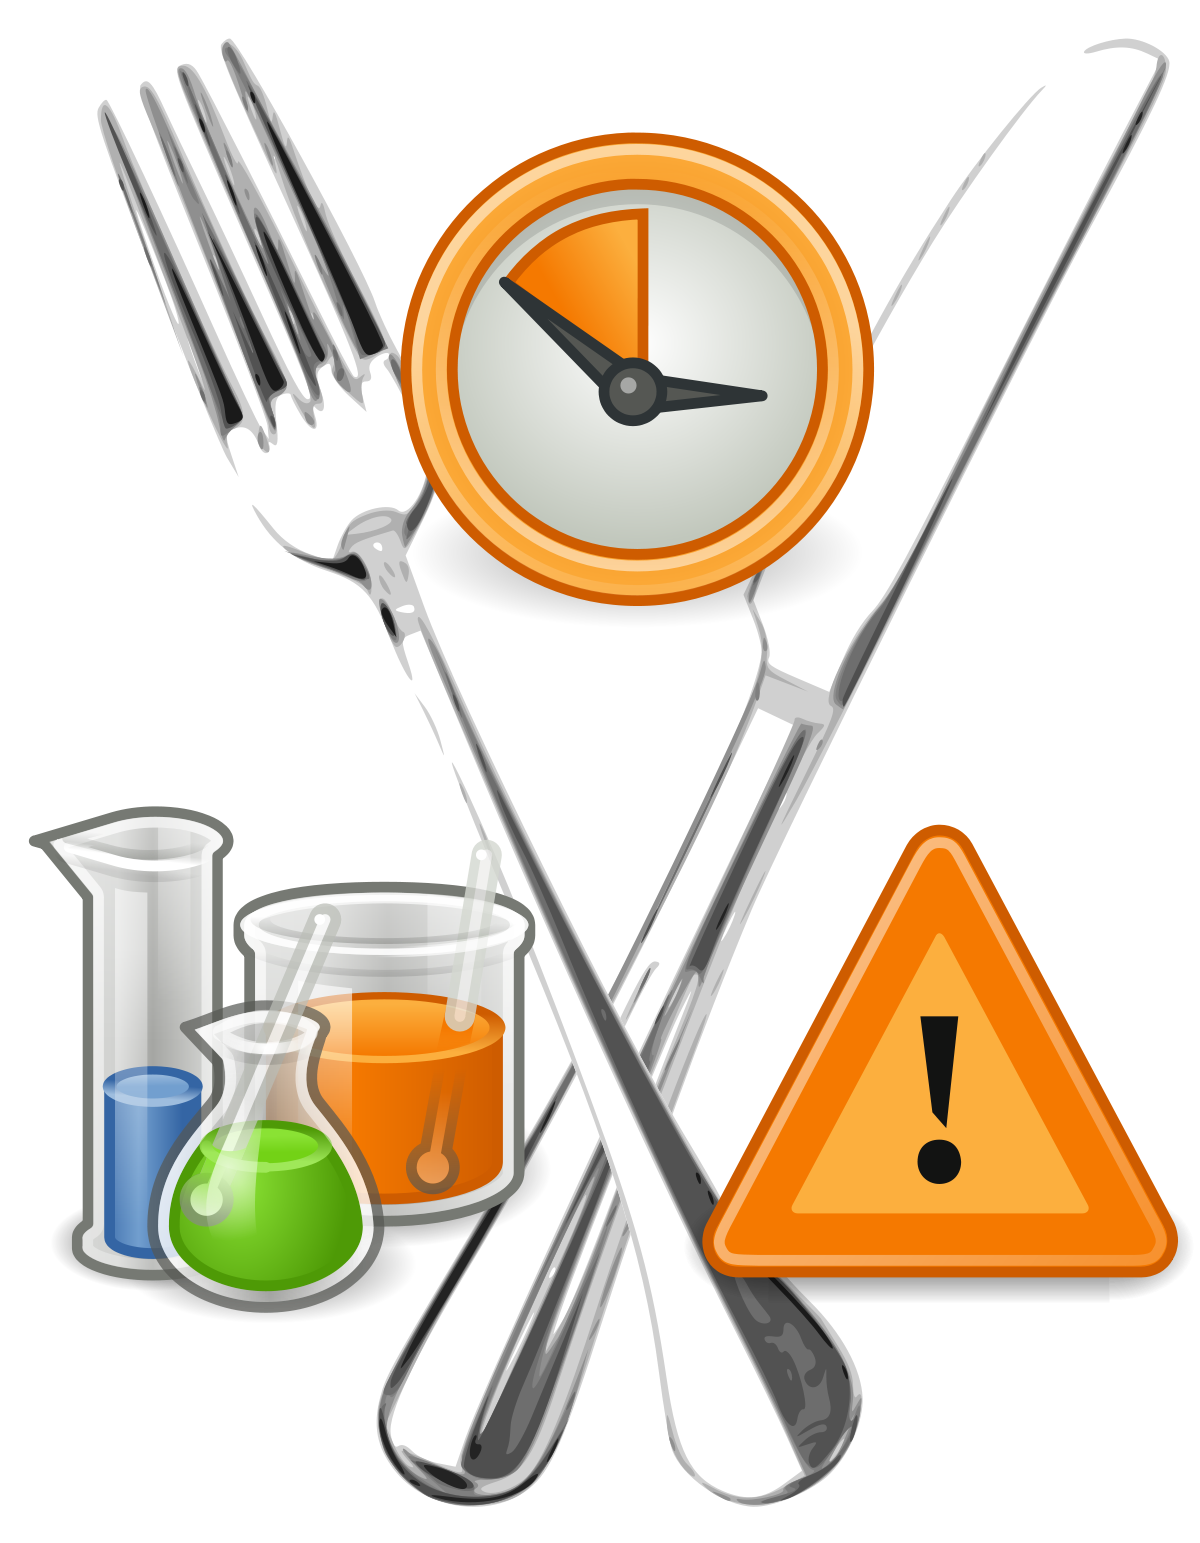 image free library Civil clipart industrial safety. Food wikipedia .